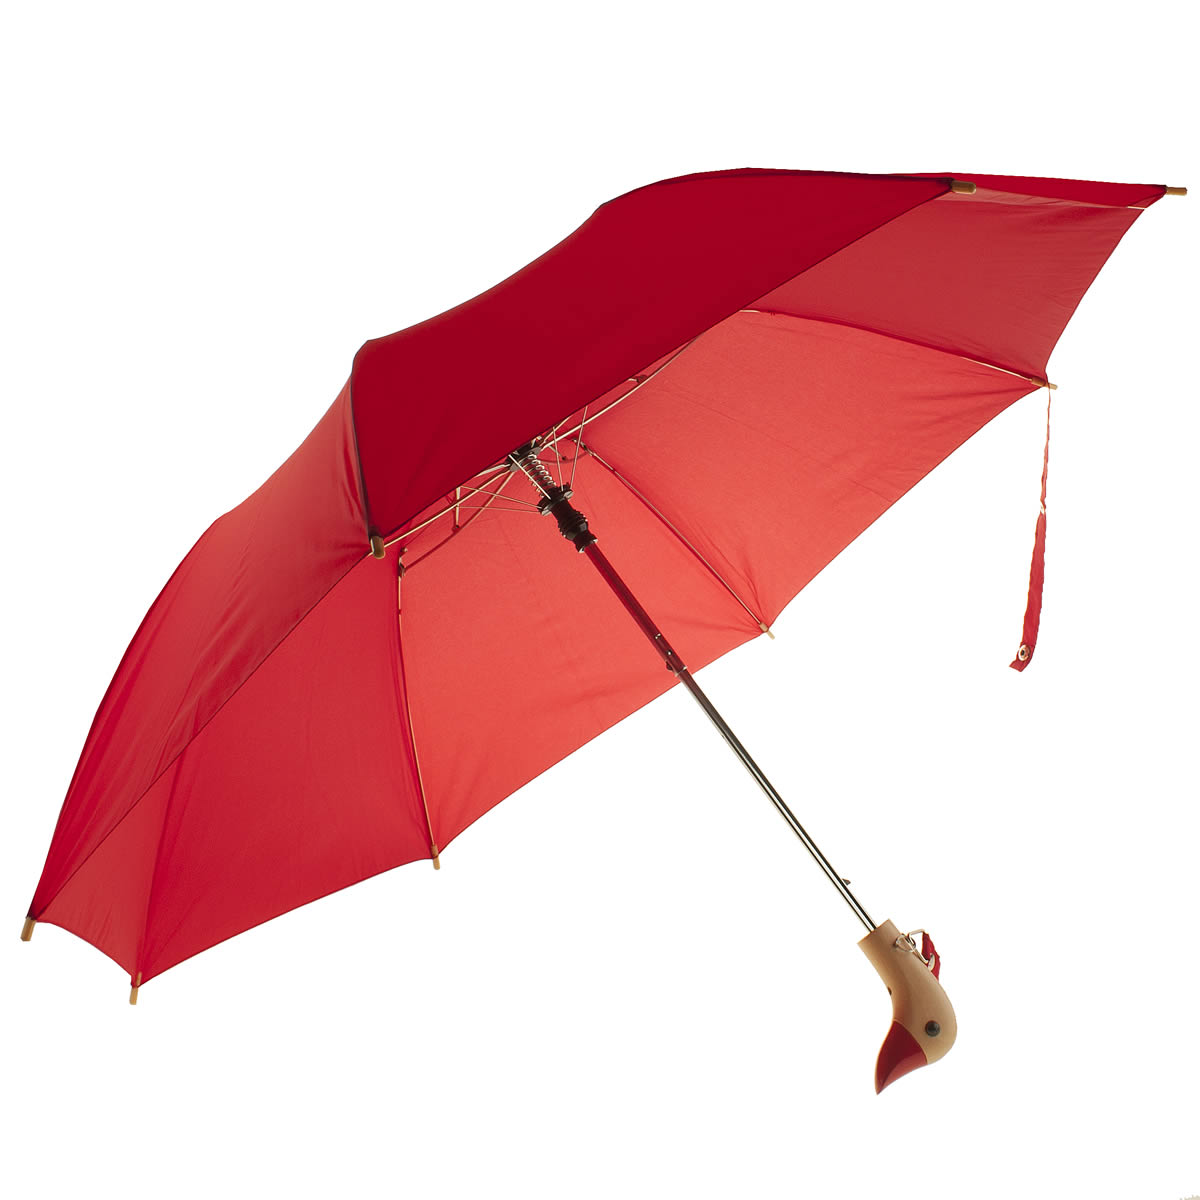 original duckhead Original Duckhead Red Umbrella Accessory